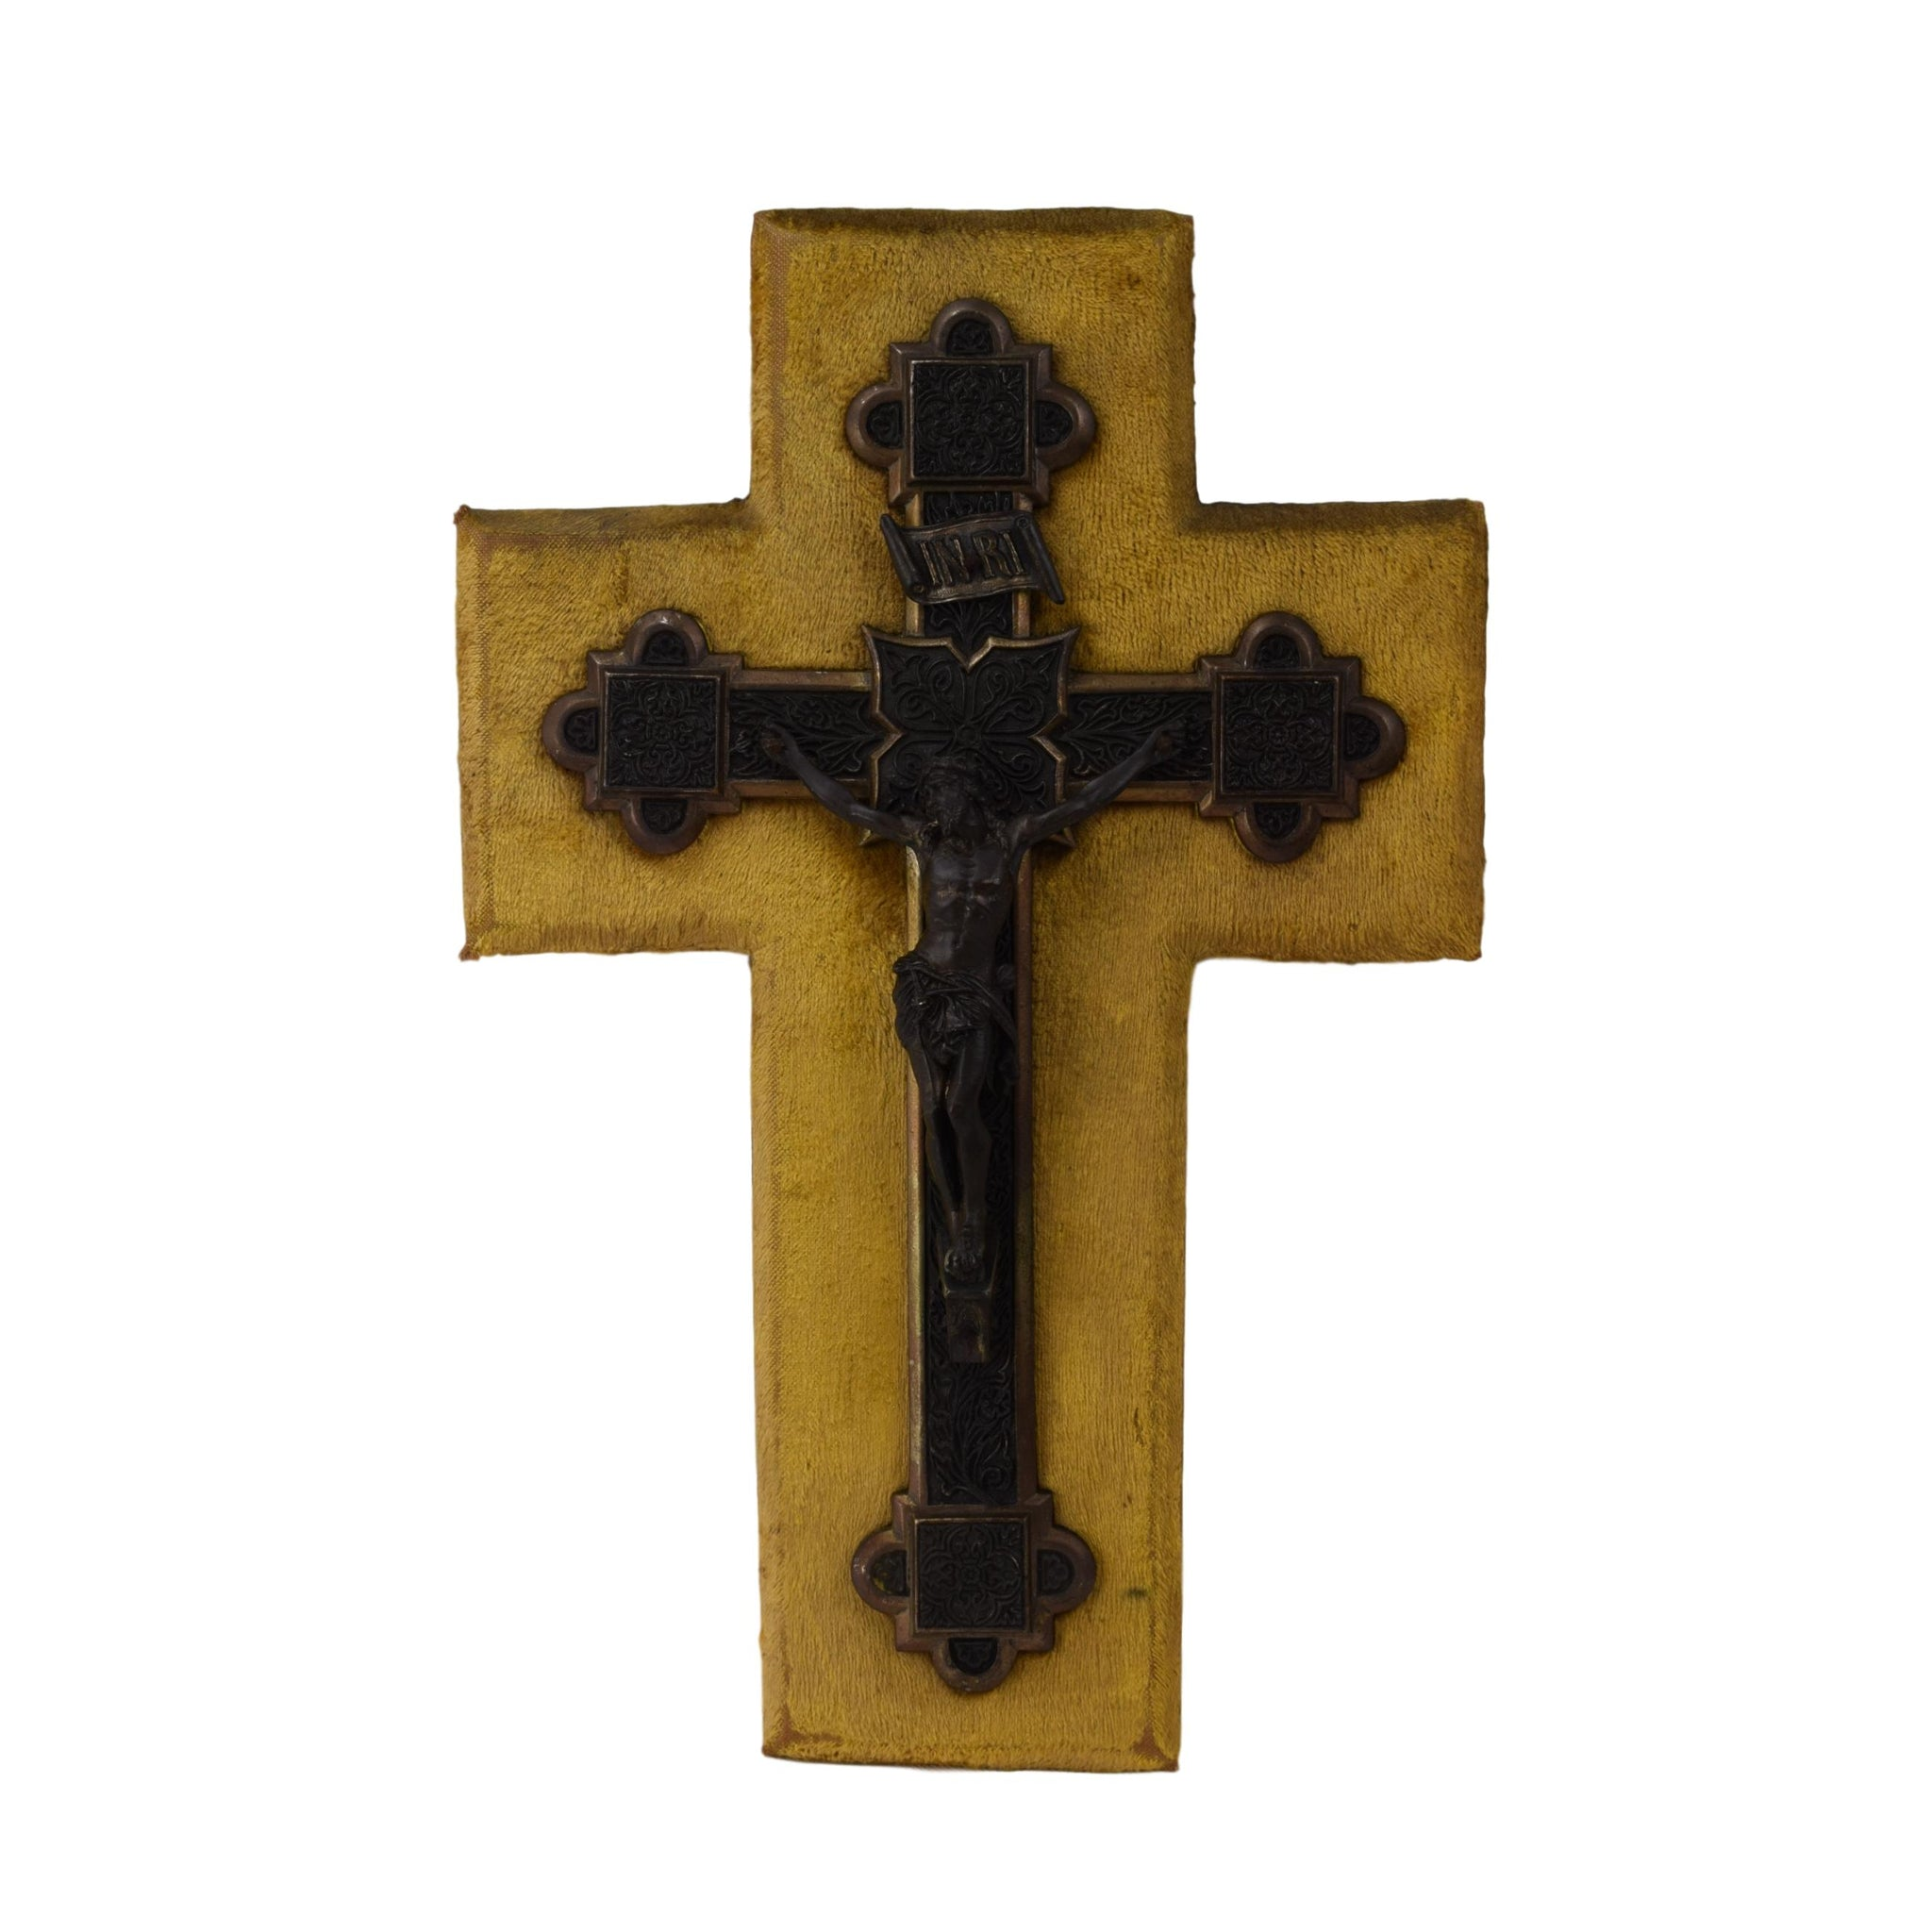 French Napoleon III Era Large Wall Cross - Yellow Velvet Wall Hanging Crucifix - Antique Religious Gift - Victorian Wall Crucifix